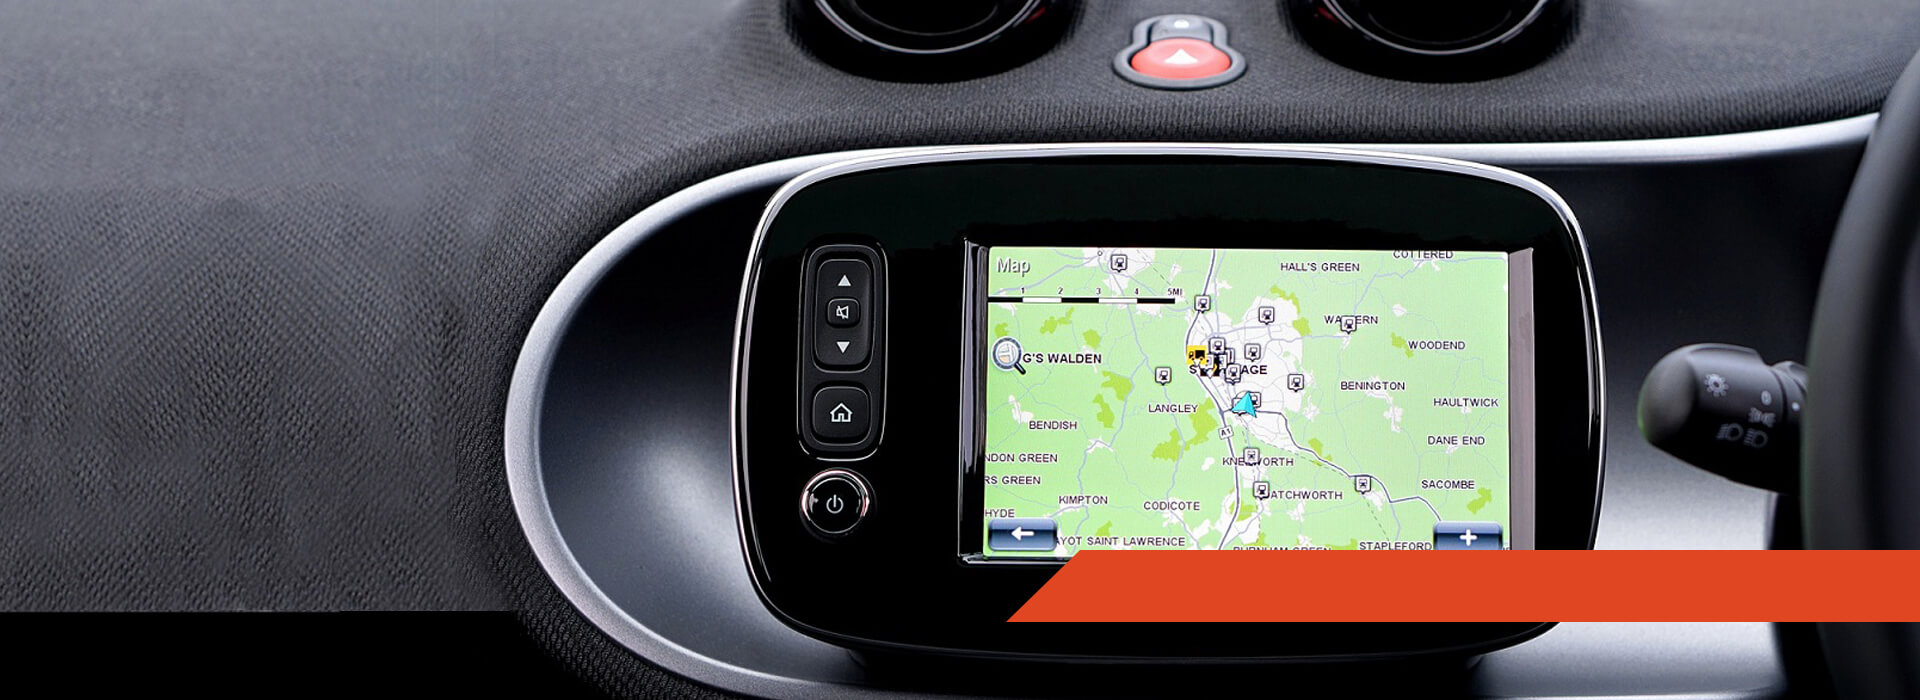 GPS Tracking Dealer In Delhi | Max Telecom